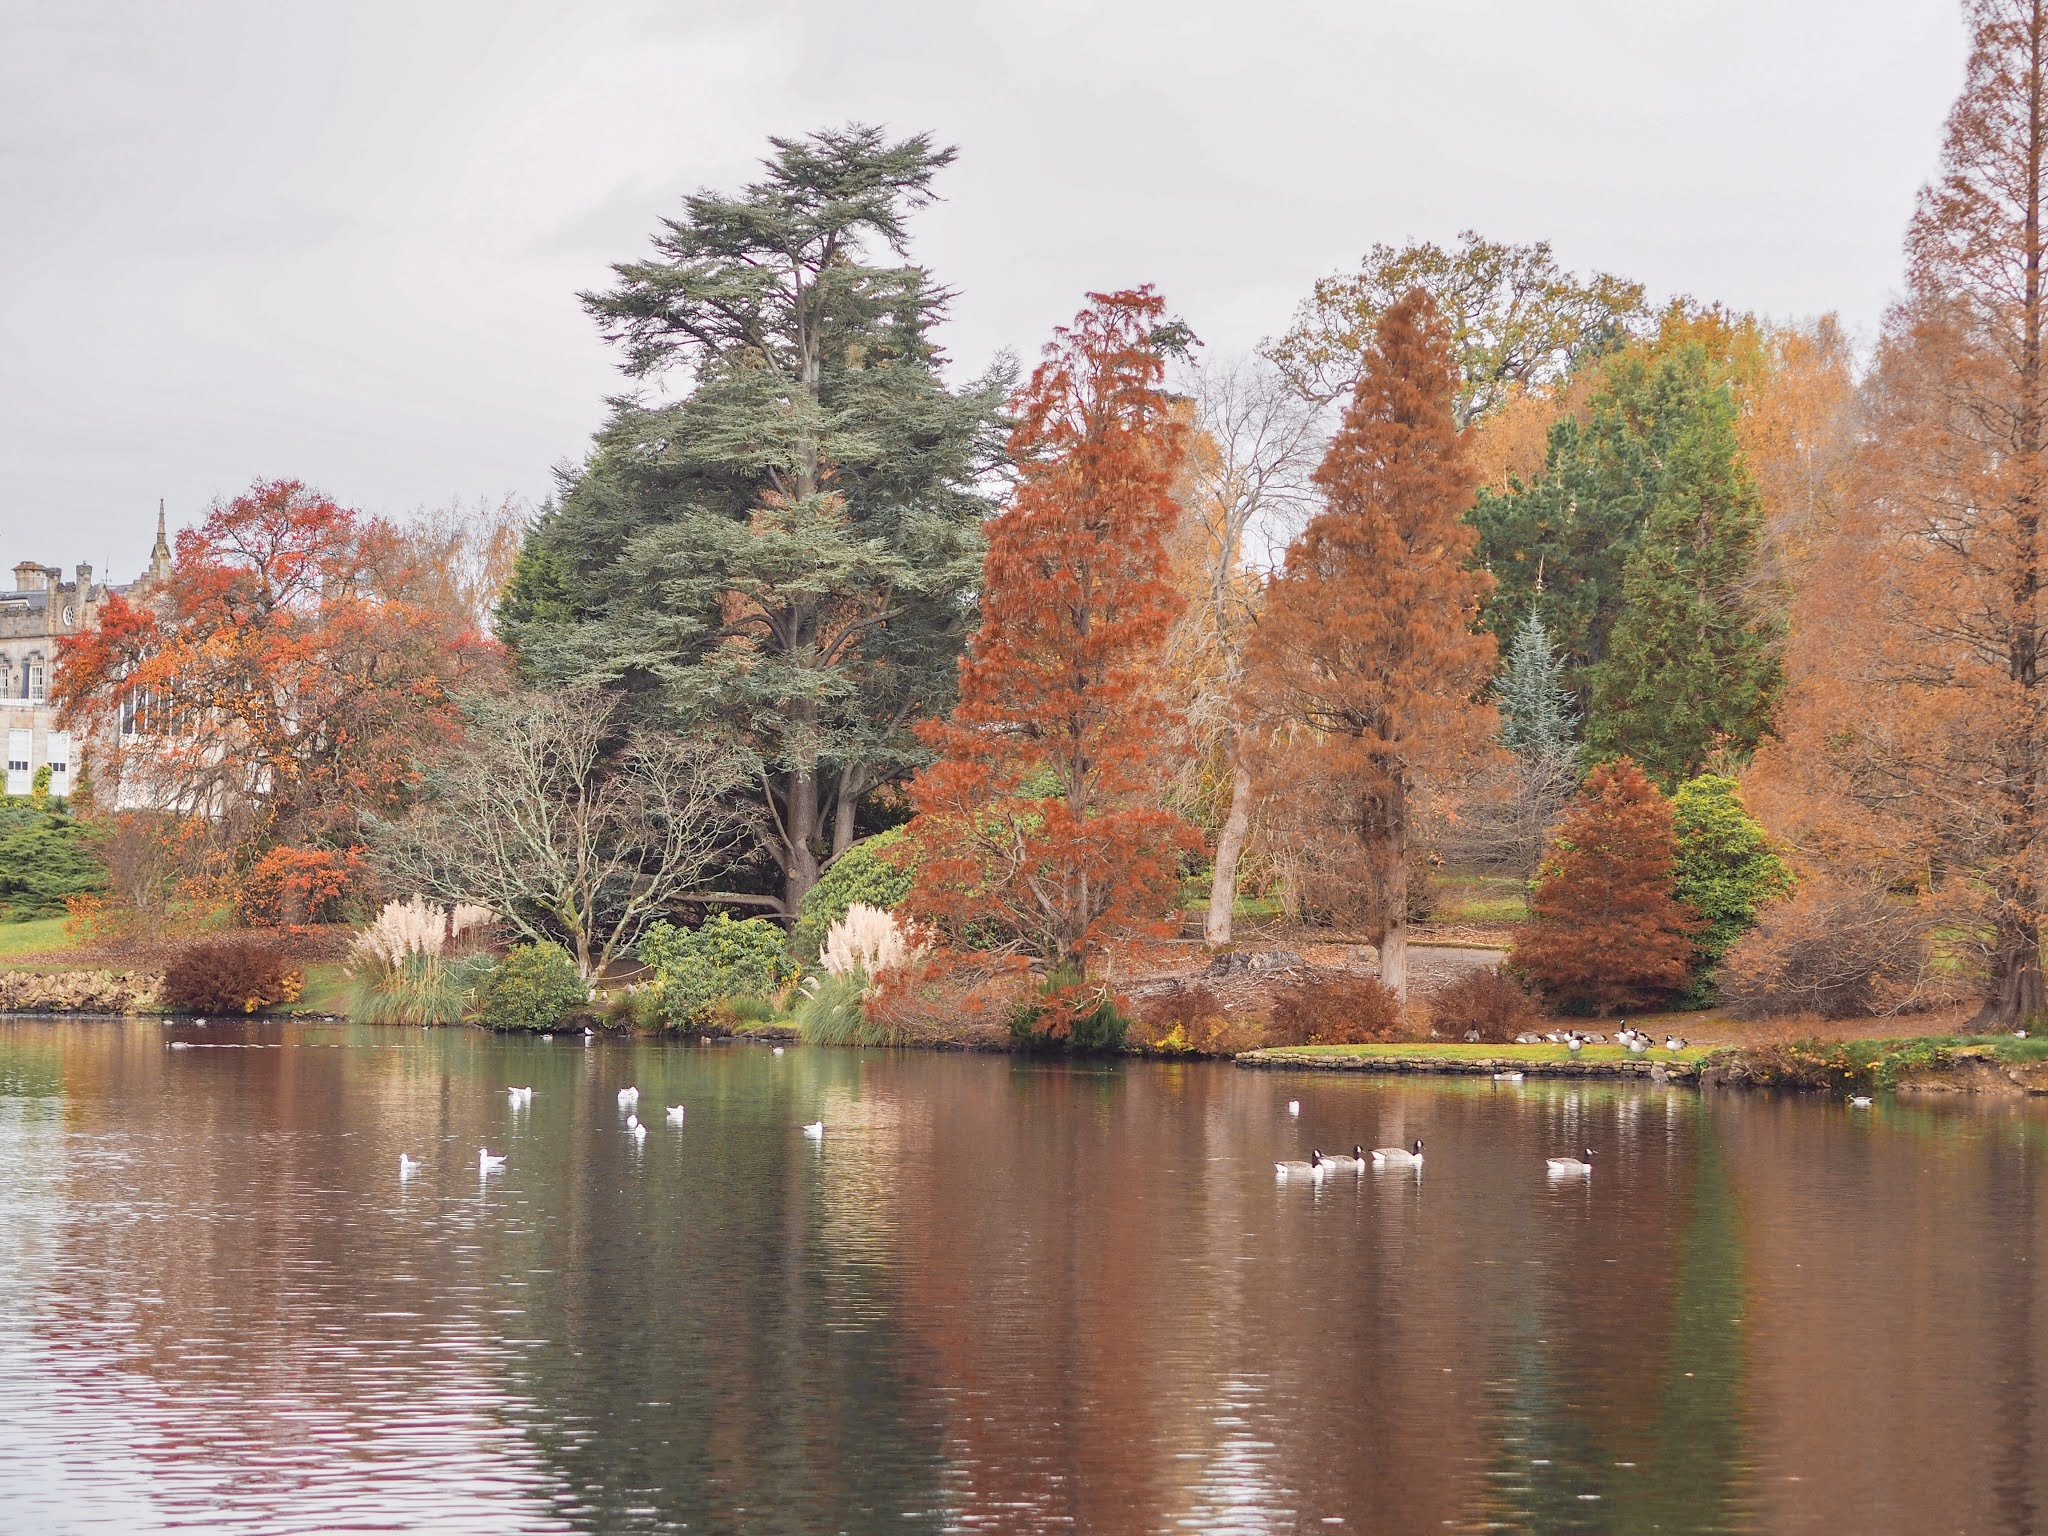 Autumn Colour at Sheffield Park, Katie Kirk Loves, UK Blogger, Autumn Photography, National Trust, UK Gardens, Sussex UK, Sheffield Park and Gardens, Fall Photography, Autumn Leaves, Autumn Colour, Autumn Fashion